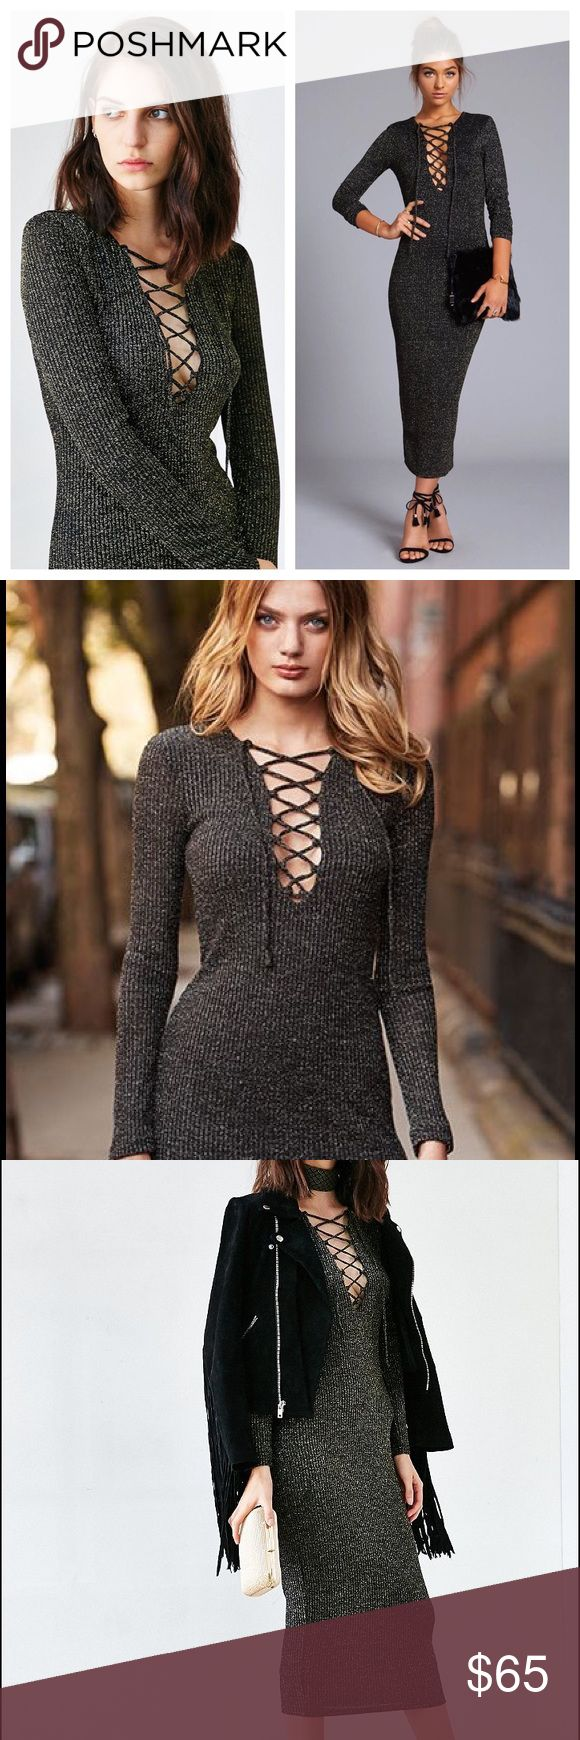 NWT Lace Up Glitter Metallic Bodycon Dress Bardot Brand new with tags. Ribbed material tons of stretch and glitter accents. Smoke free pet friendly Urban Outfitters Dresses Long Sleeve